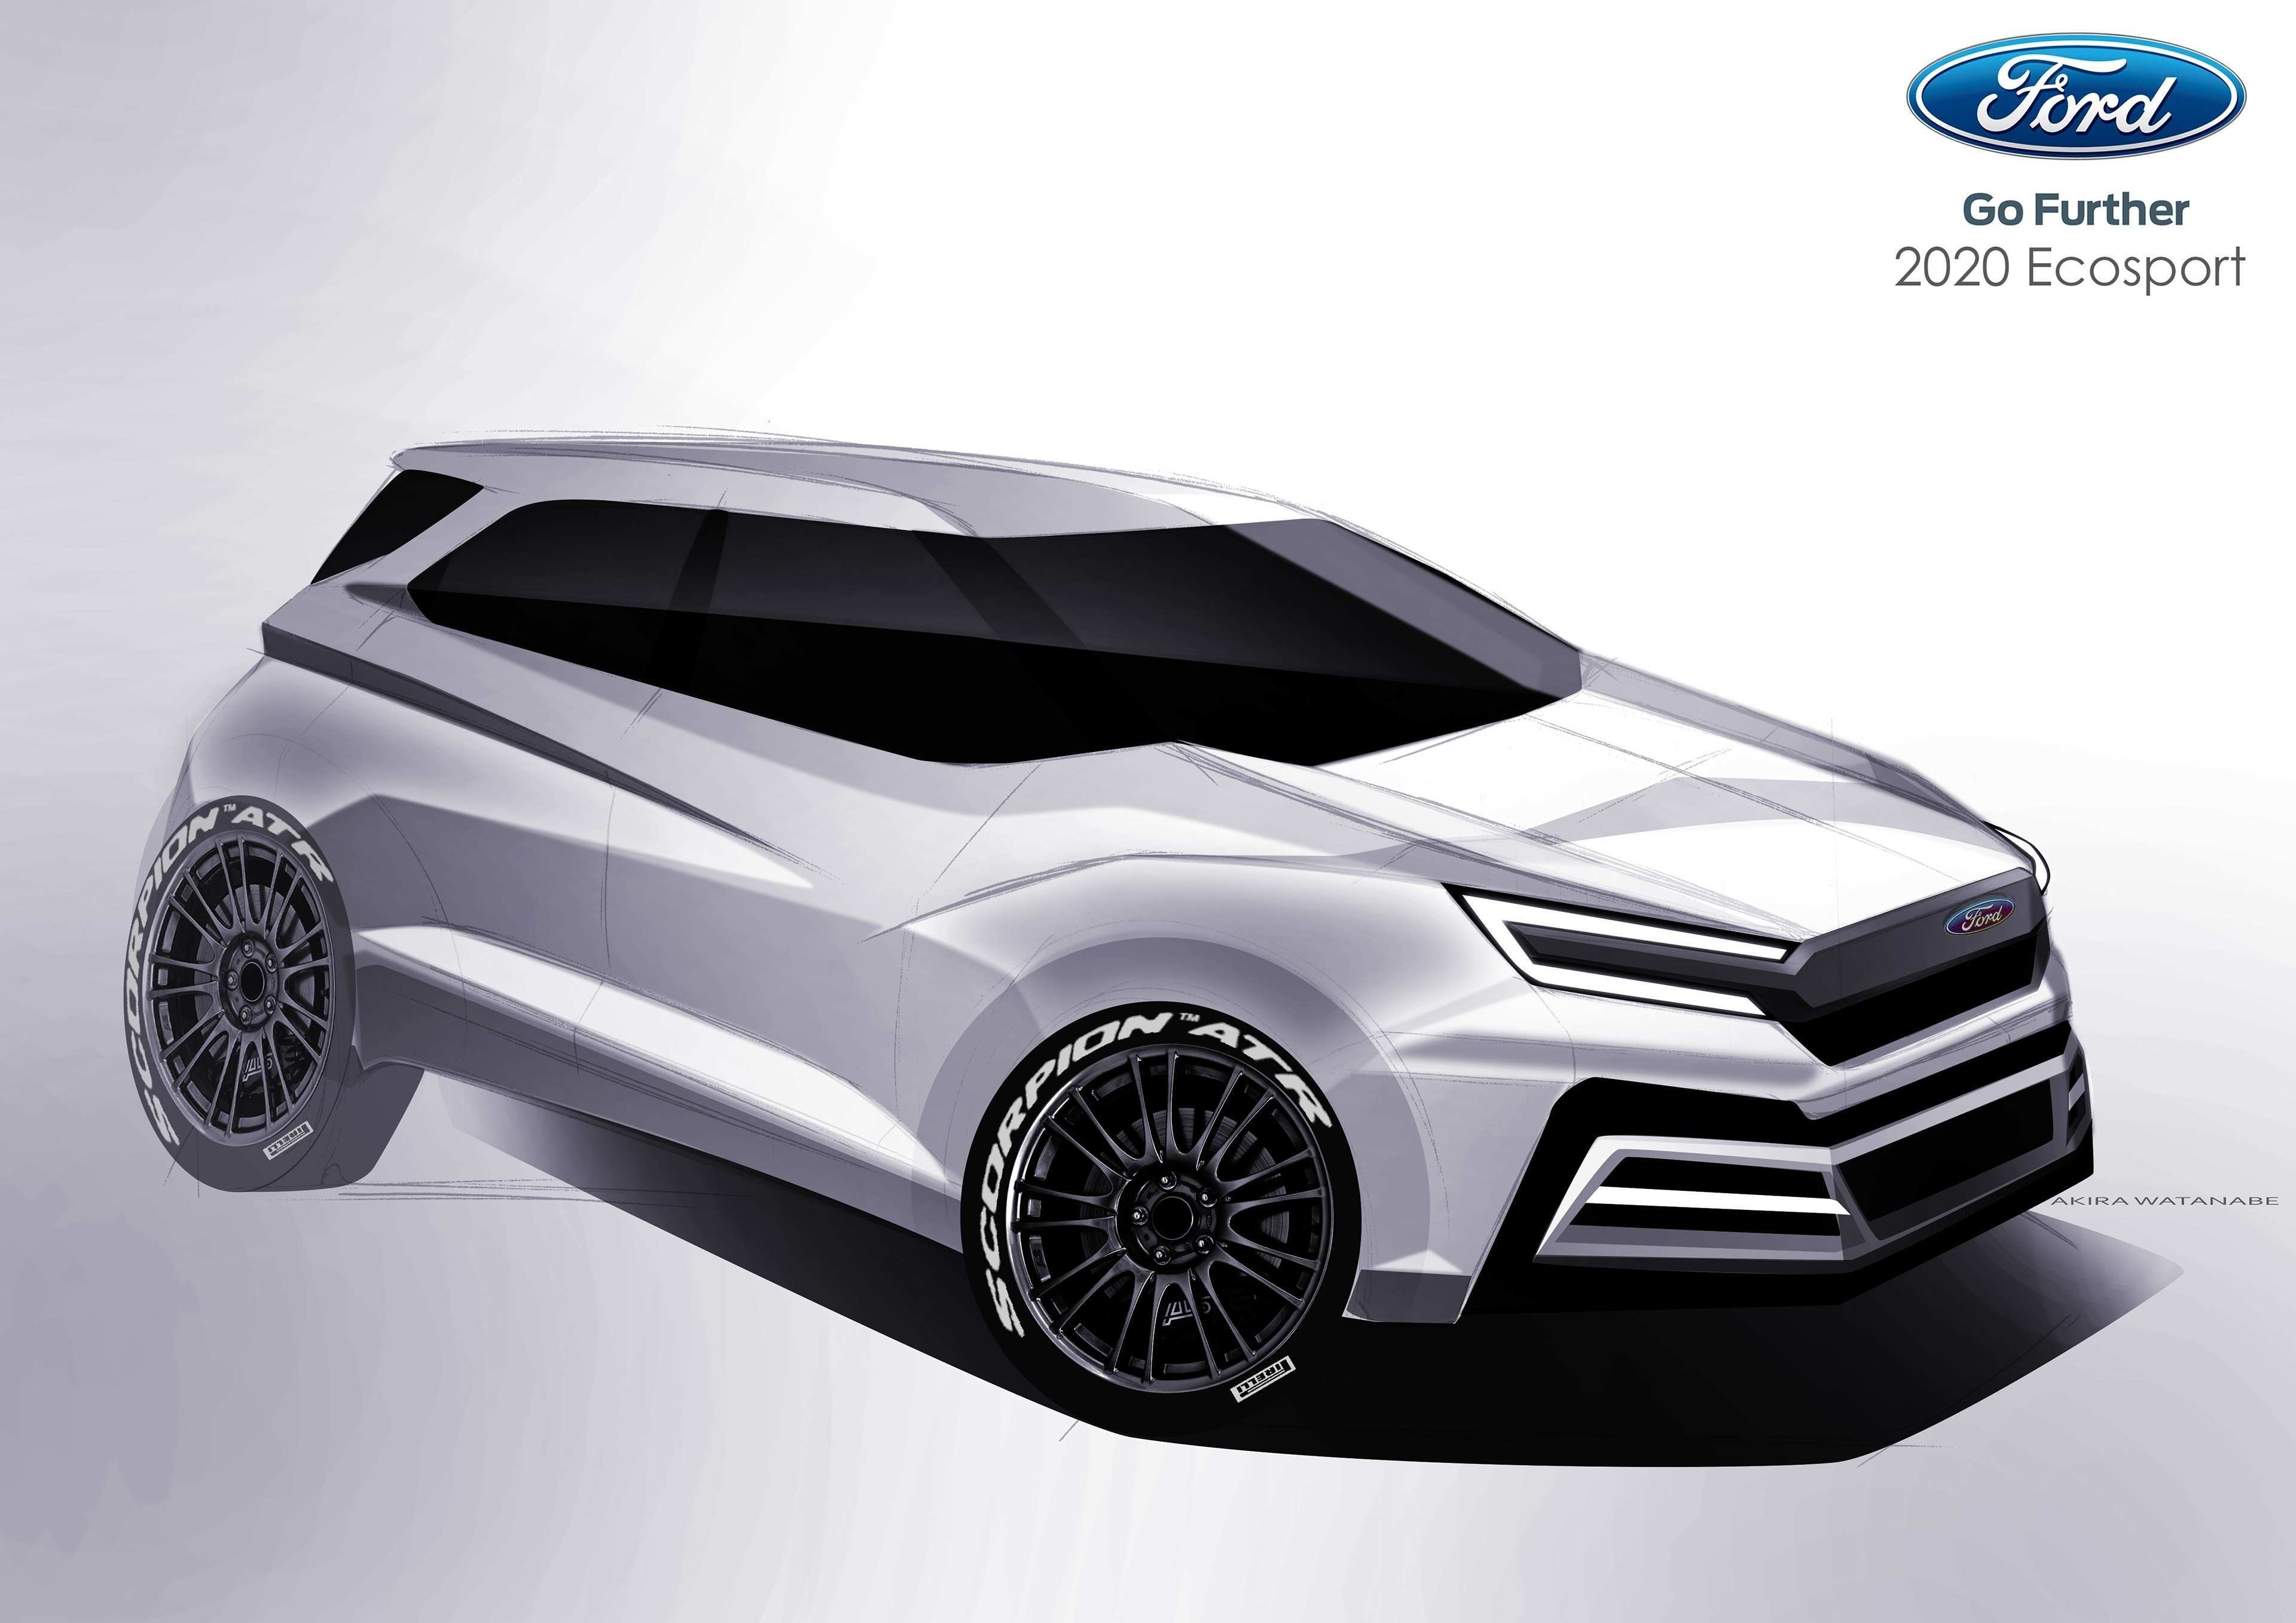 57 Concept of 2020 Ford Ecosport Images for 2020 Ford Ecosport